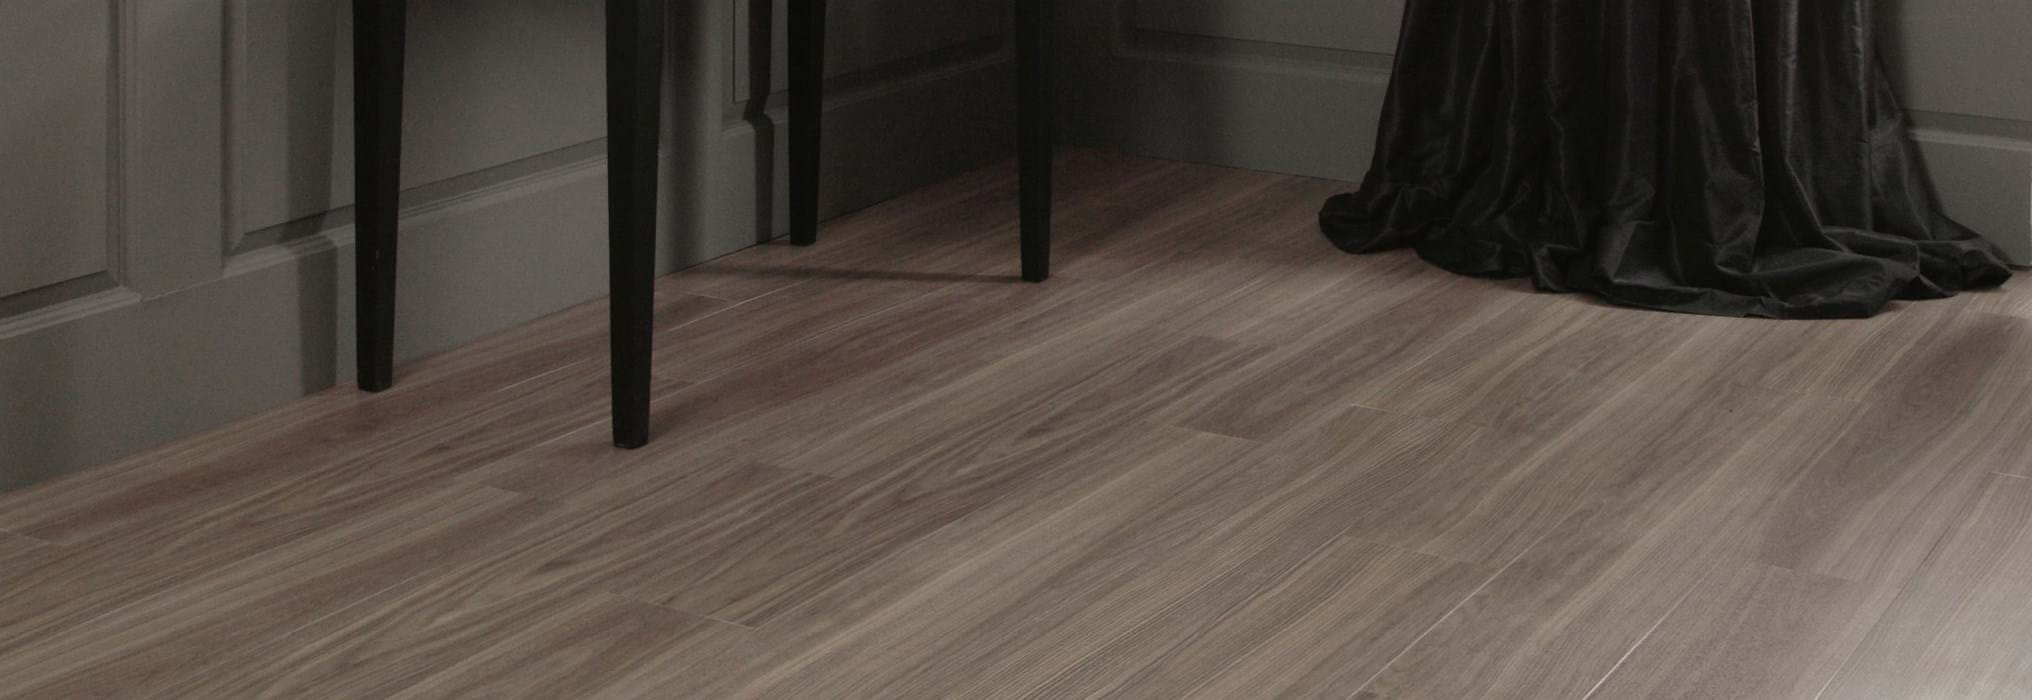 Amtico International: Dusky Walnut - SF3W2542